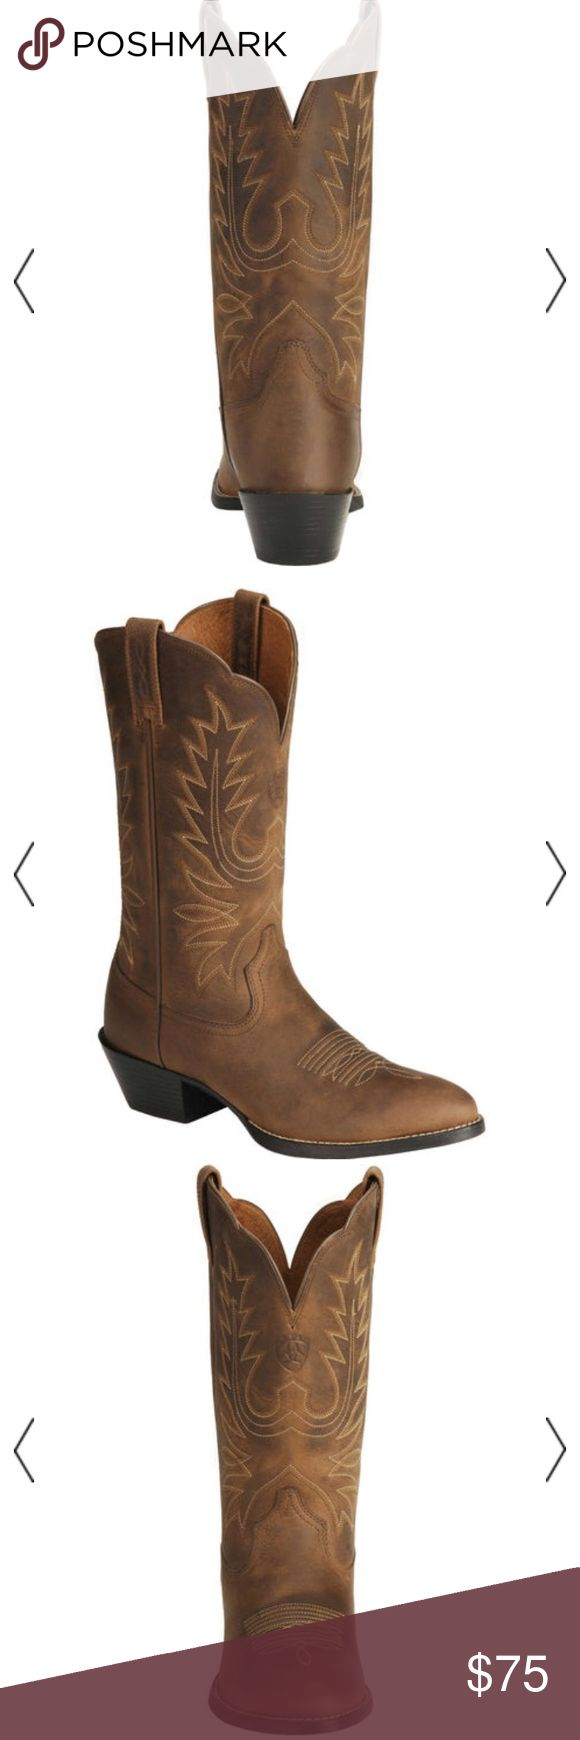 """Ariat Heritage Cowgirl Boots- medium toe Perfect for a music festival or a flowy short dress!  Ariat Heritage cowboy boot features the stabilizing ATS composite fiber forked shank for unmatched stability and comfort. The flexible, removable gel cushioned ATS footbed, metatarsal support pad, and countered heel cradle provide all-day comfort and support. Full grain leather upper with a 13"""" fancy stitched scalloped leather shaft. Walking heel and medium R toe. 3/4 welt.  Barely used. You still…"""